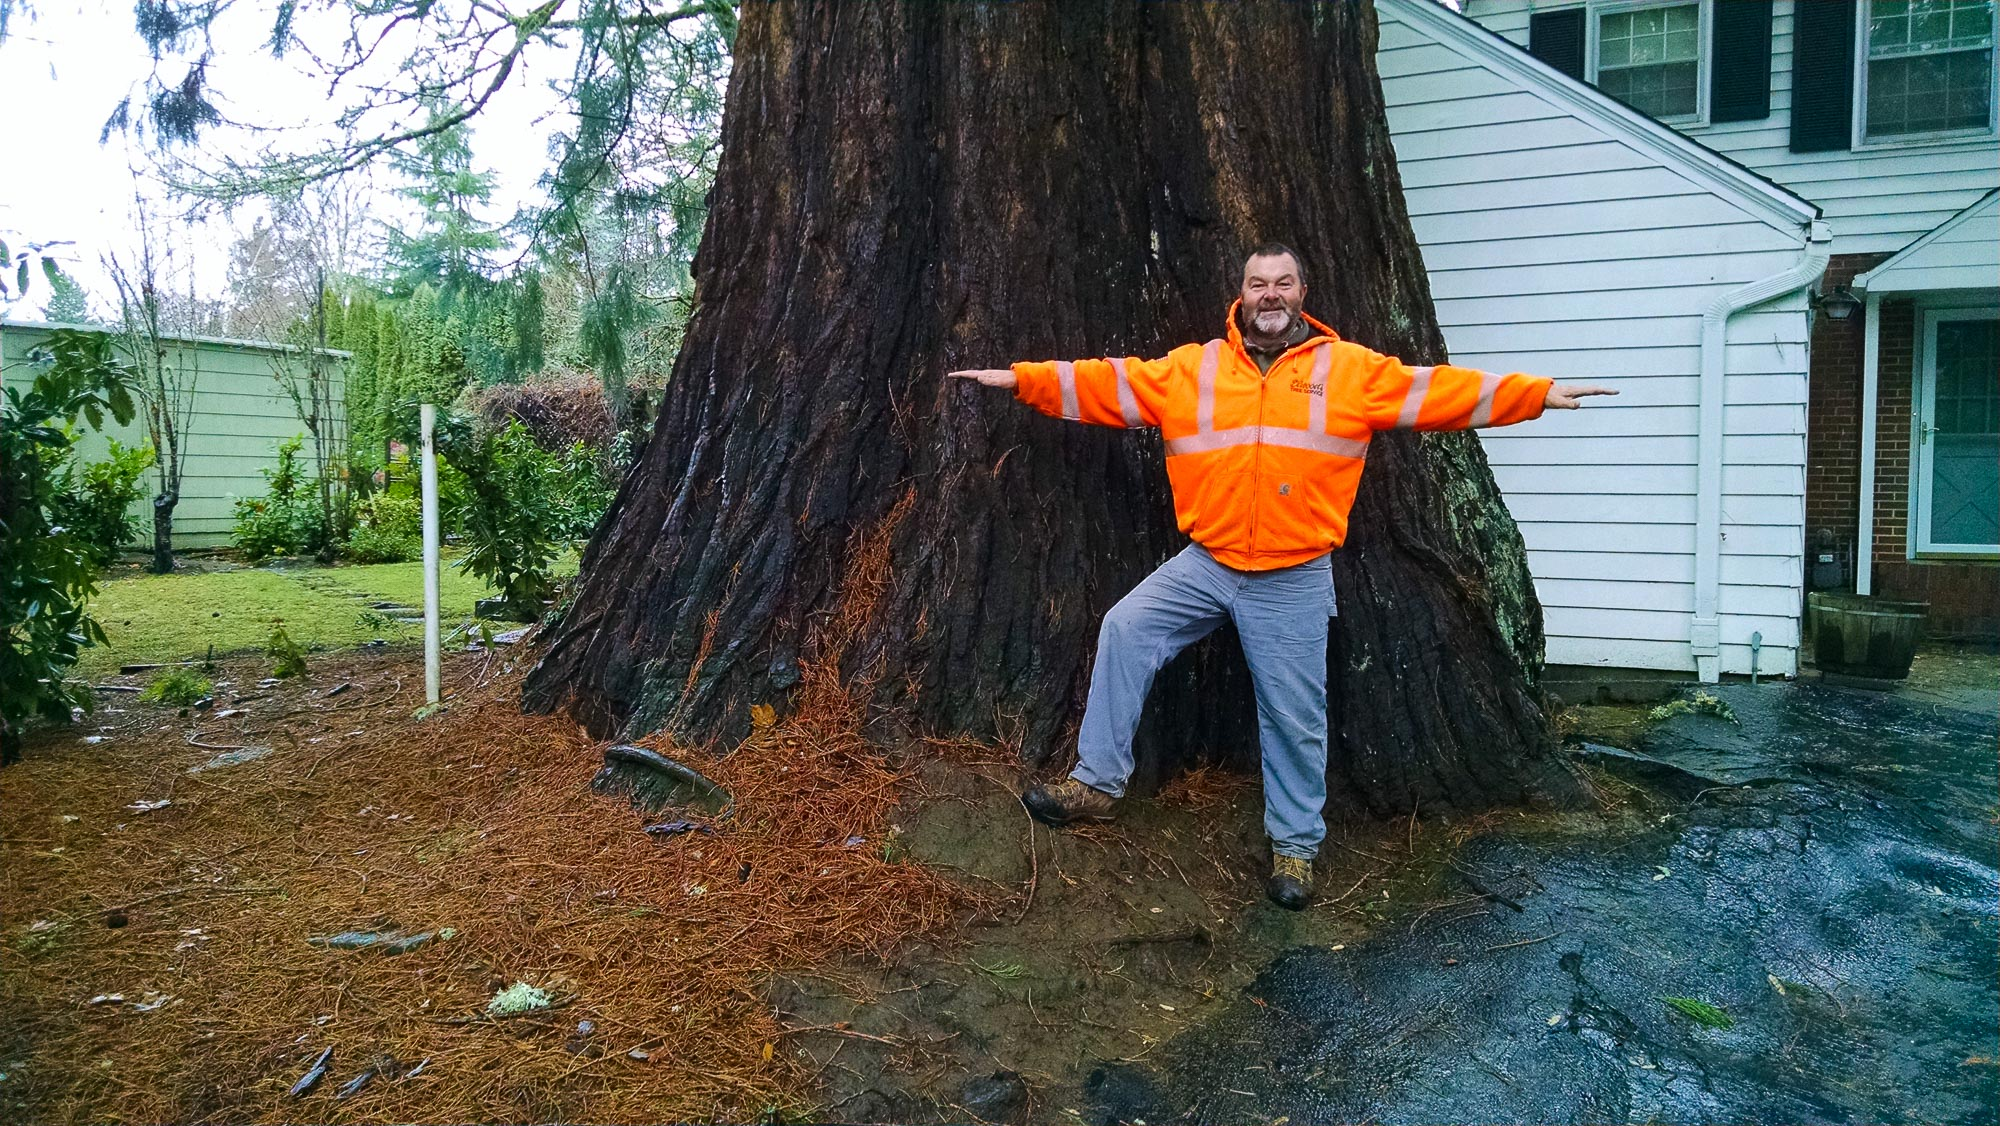 tree-service-removal-pruning-salem-oregon-783